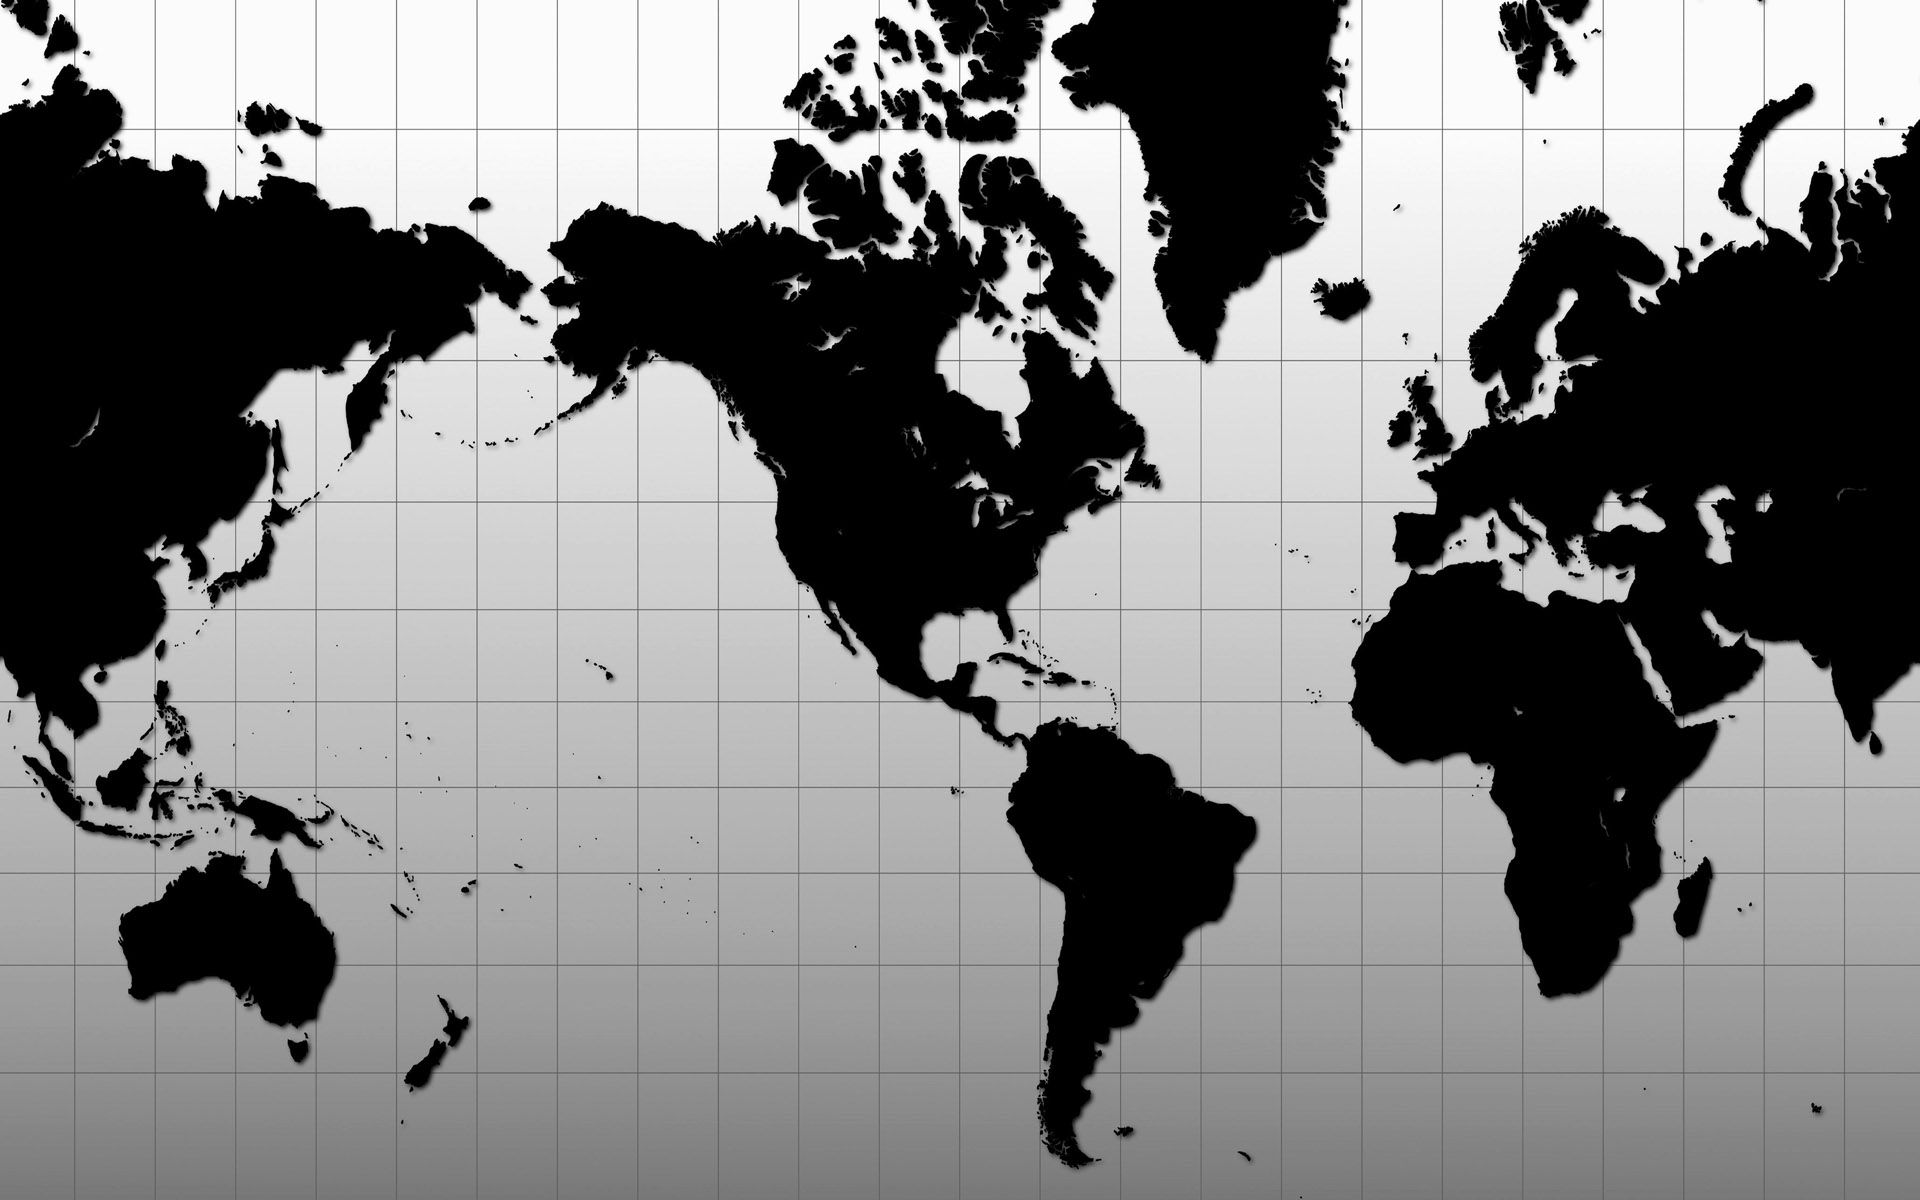 World map black and white hd wallpapers download free world map world map black and white hd wallpapers download free world map gumiabroncs